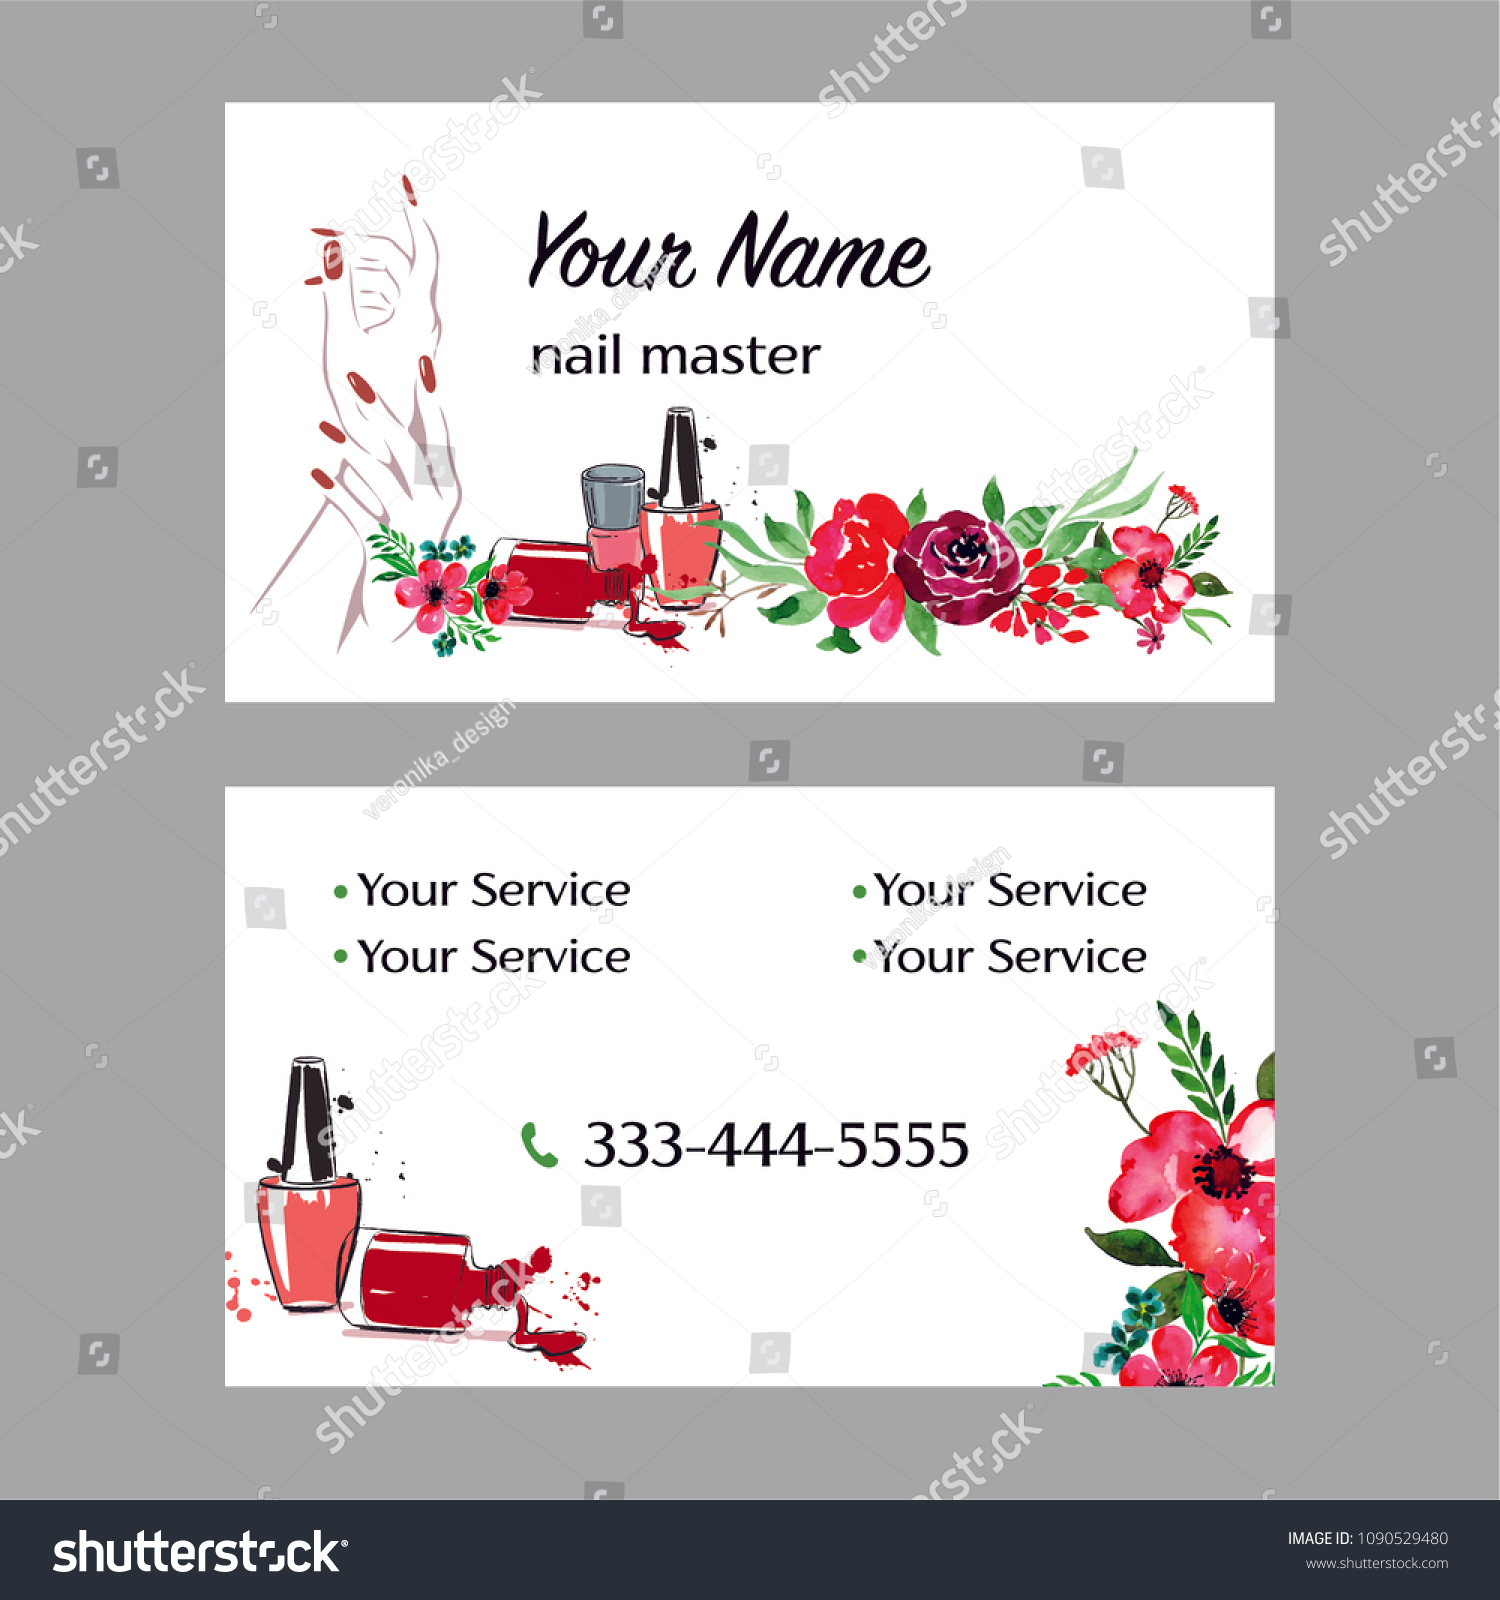 nail artist nail salon business card with hand manicure illustration - Nail Salon Business Cards